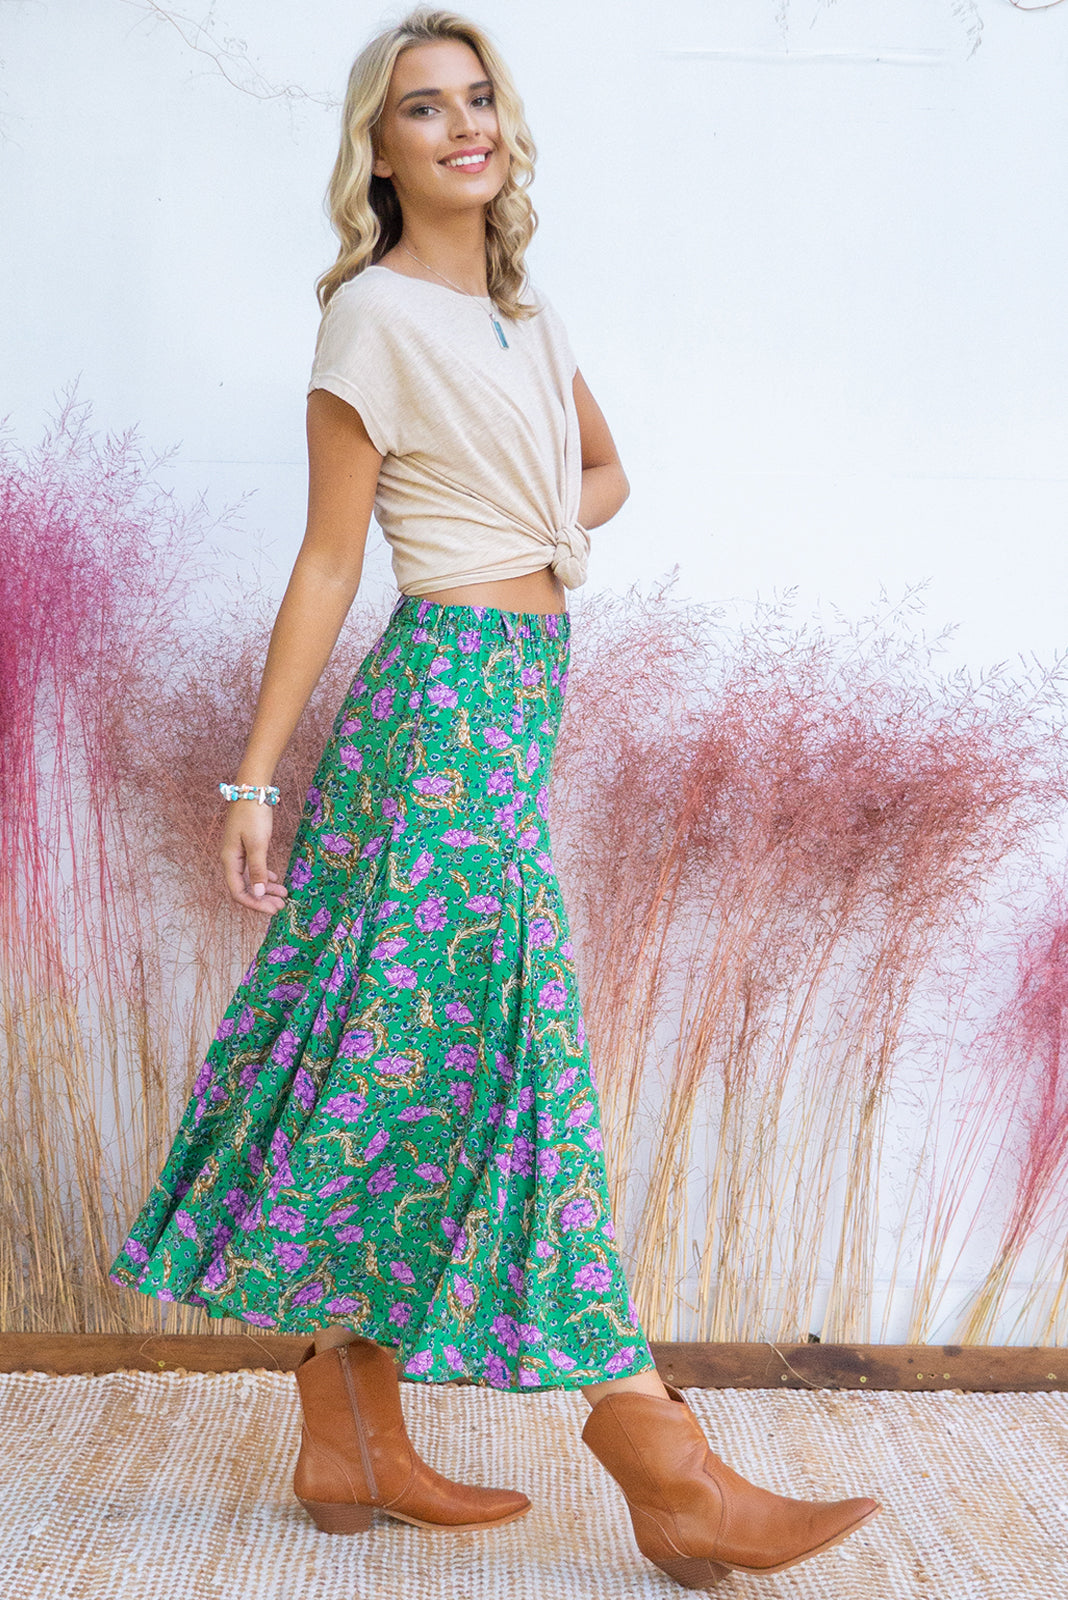 Avalon Gandalf Green Midi Skirt has an elastic waistband is fitted over the hips and waist but features full fishtail inserts for a full soft finish at the hemline. It comes in a woven non stretch 100% rayon with and features apple green base with a purple bohemian eastern inspired floral print